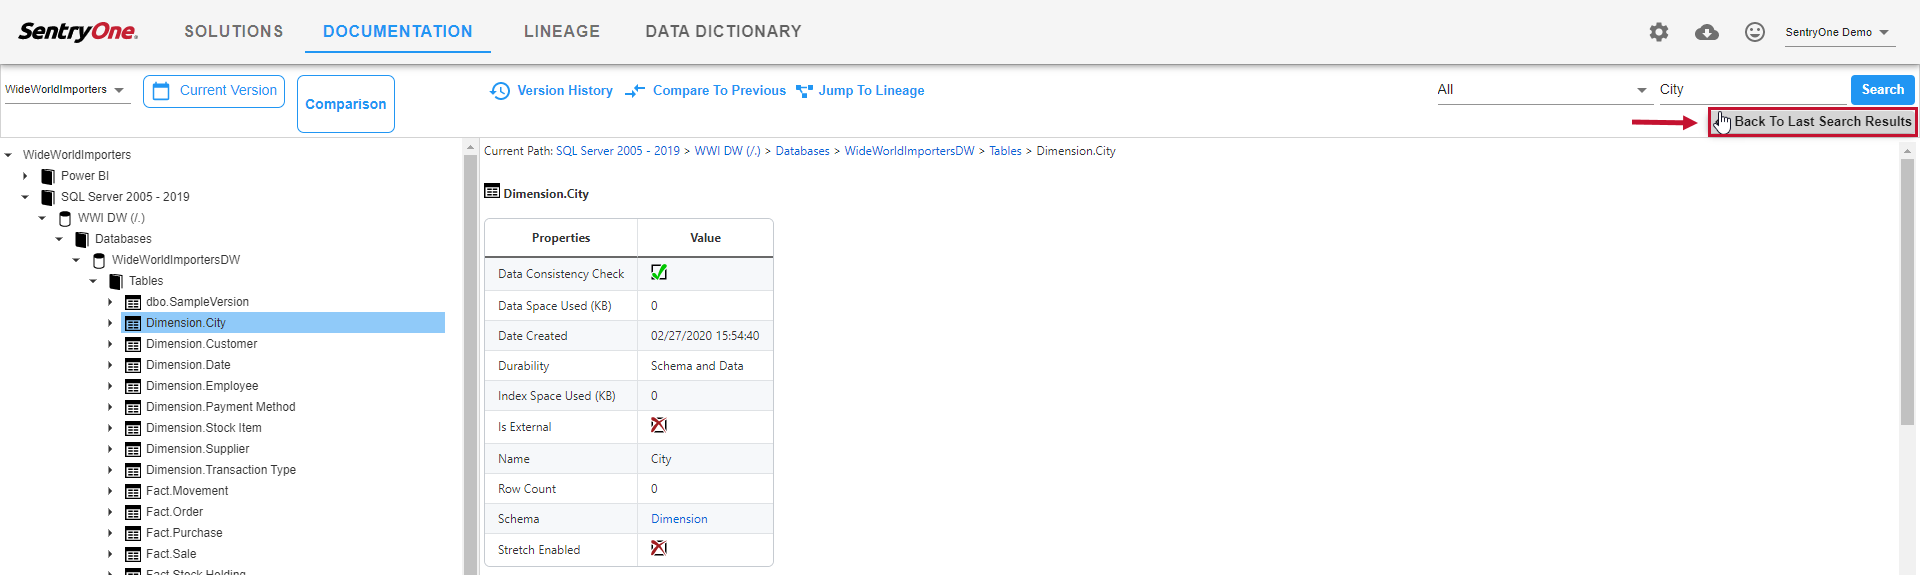 SentryOne Document Documentation Back to Last Search Results